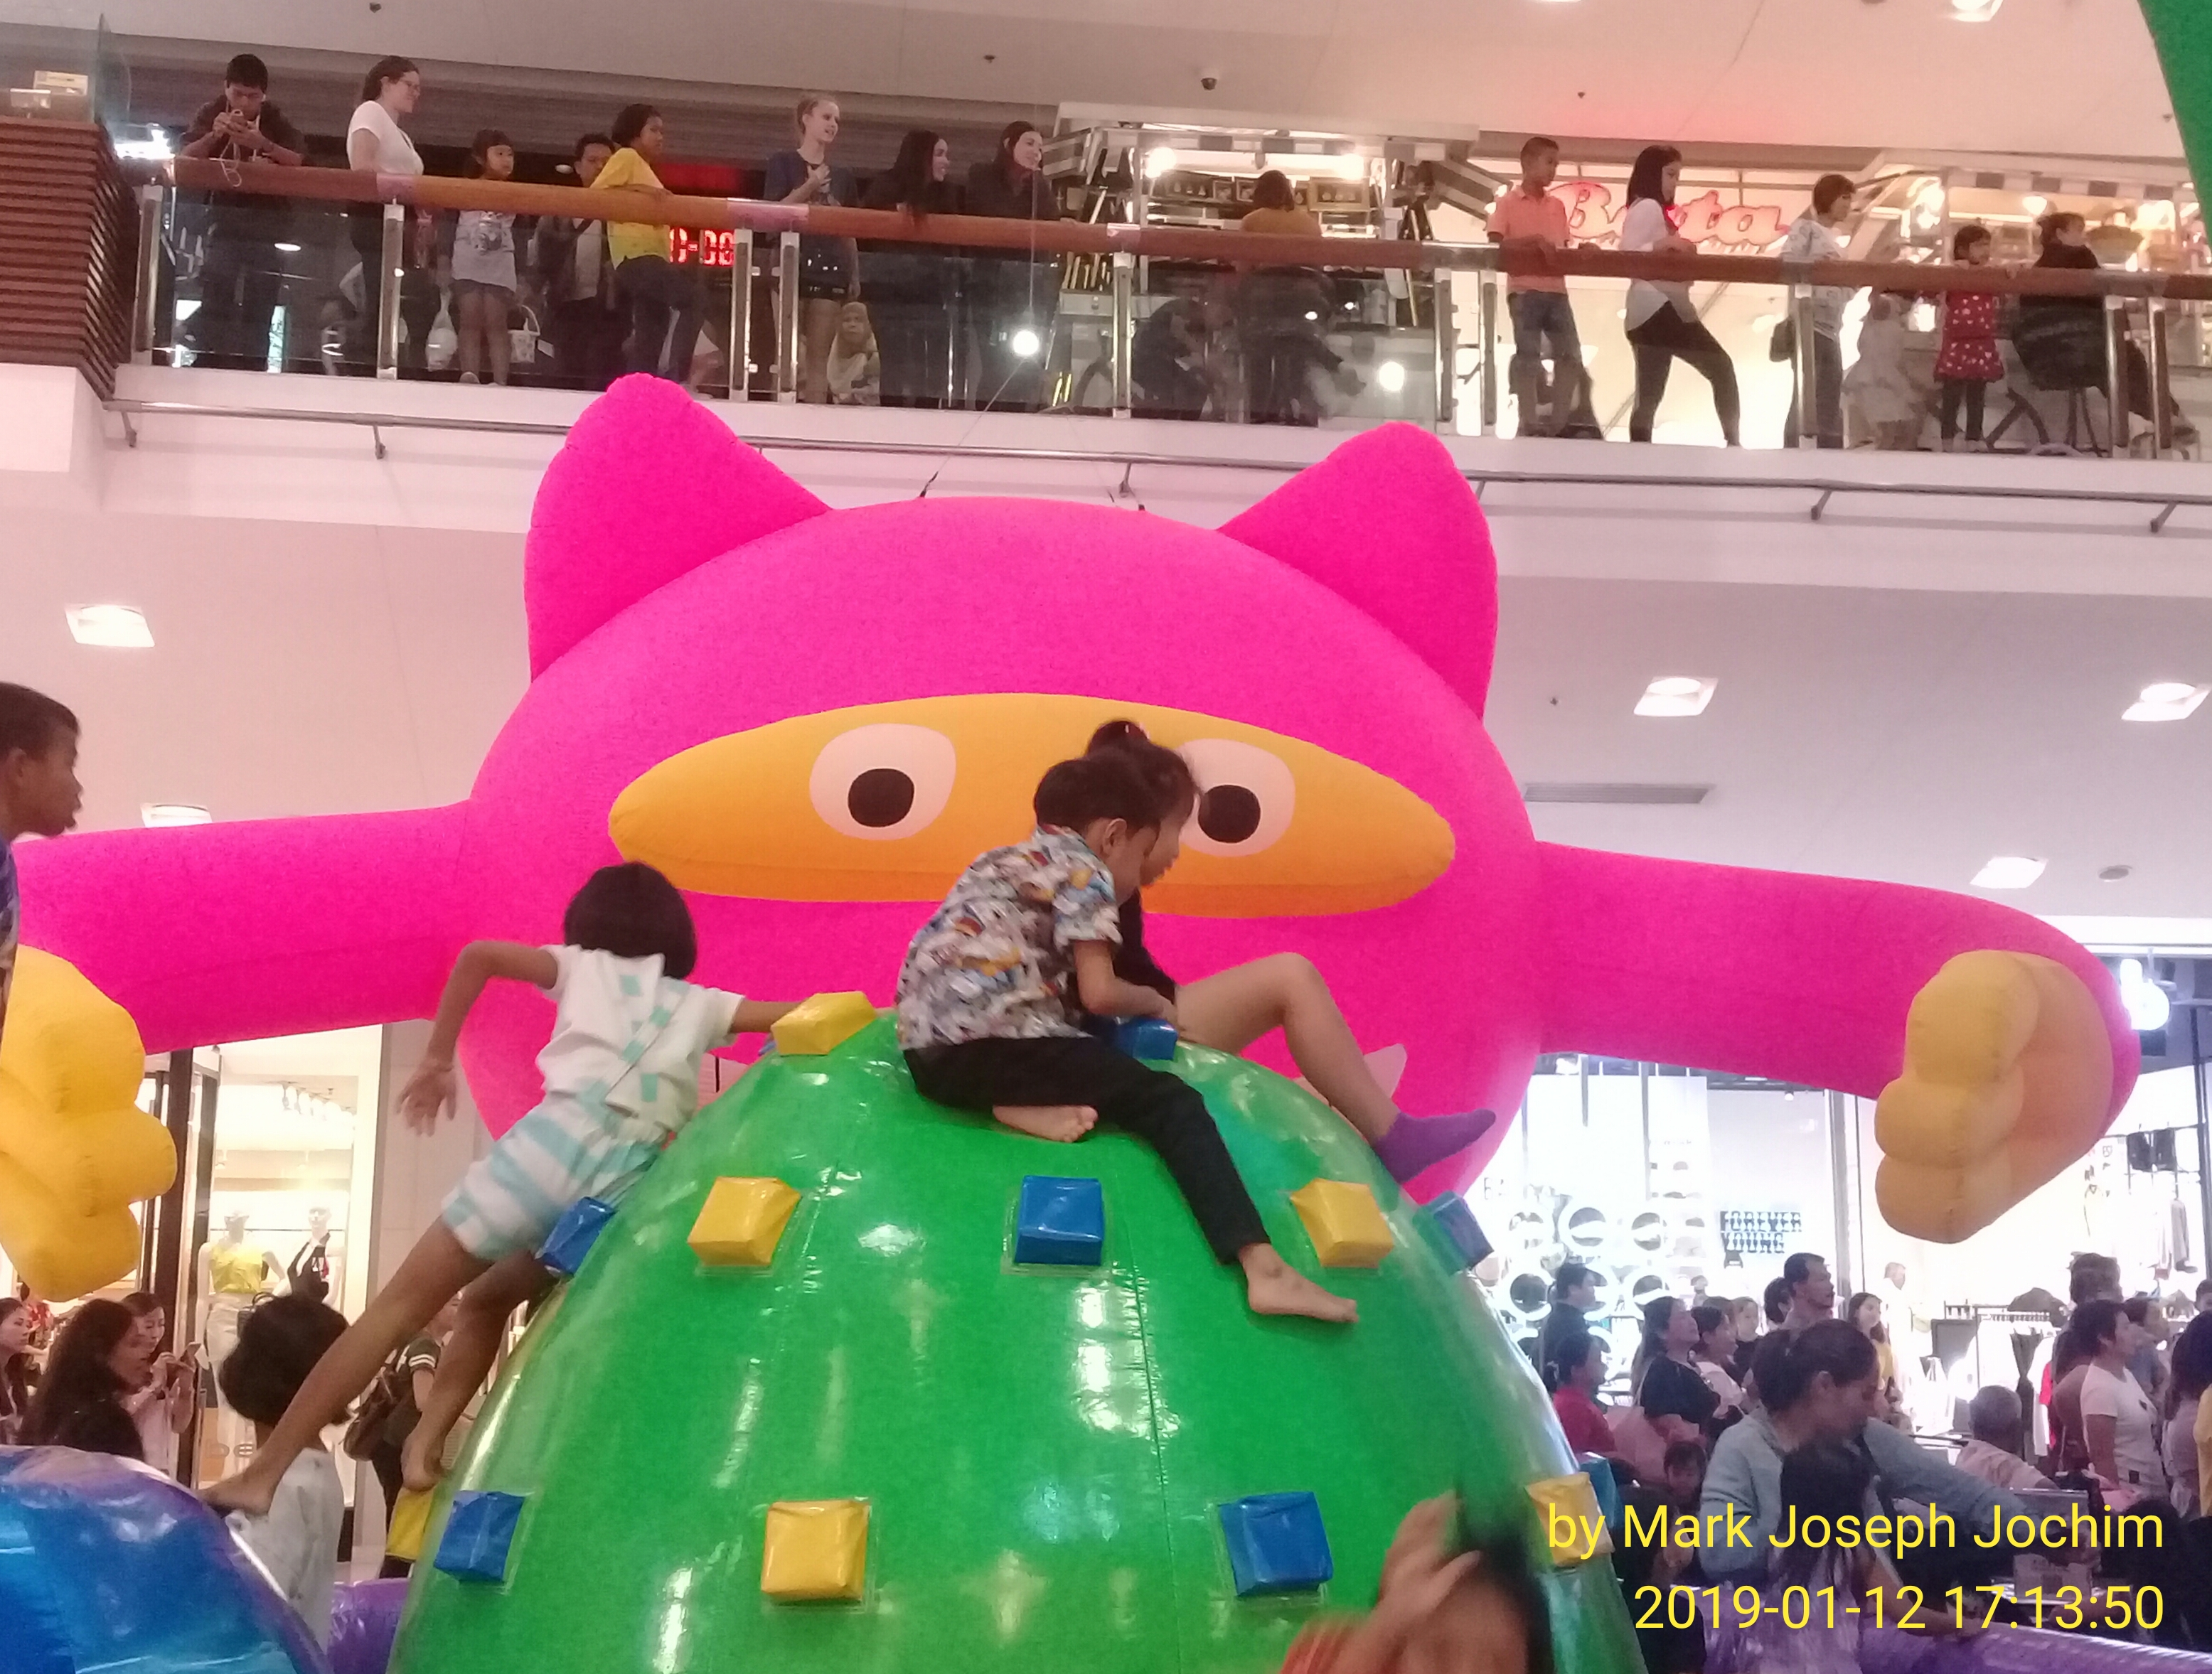 Children's Day at Central Festival (old mall) in Phuket, Thailand, January 12, 2019